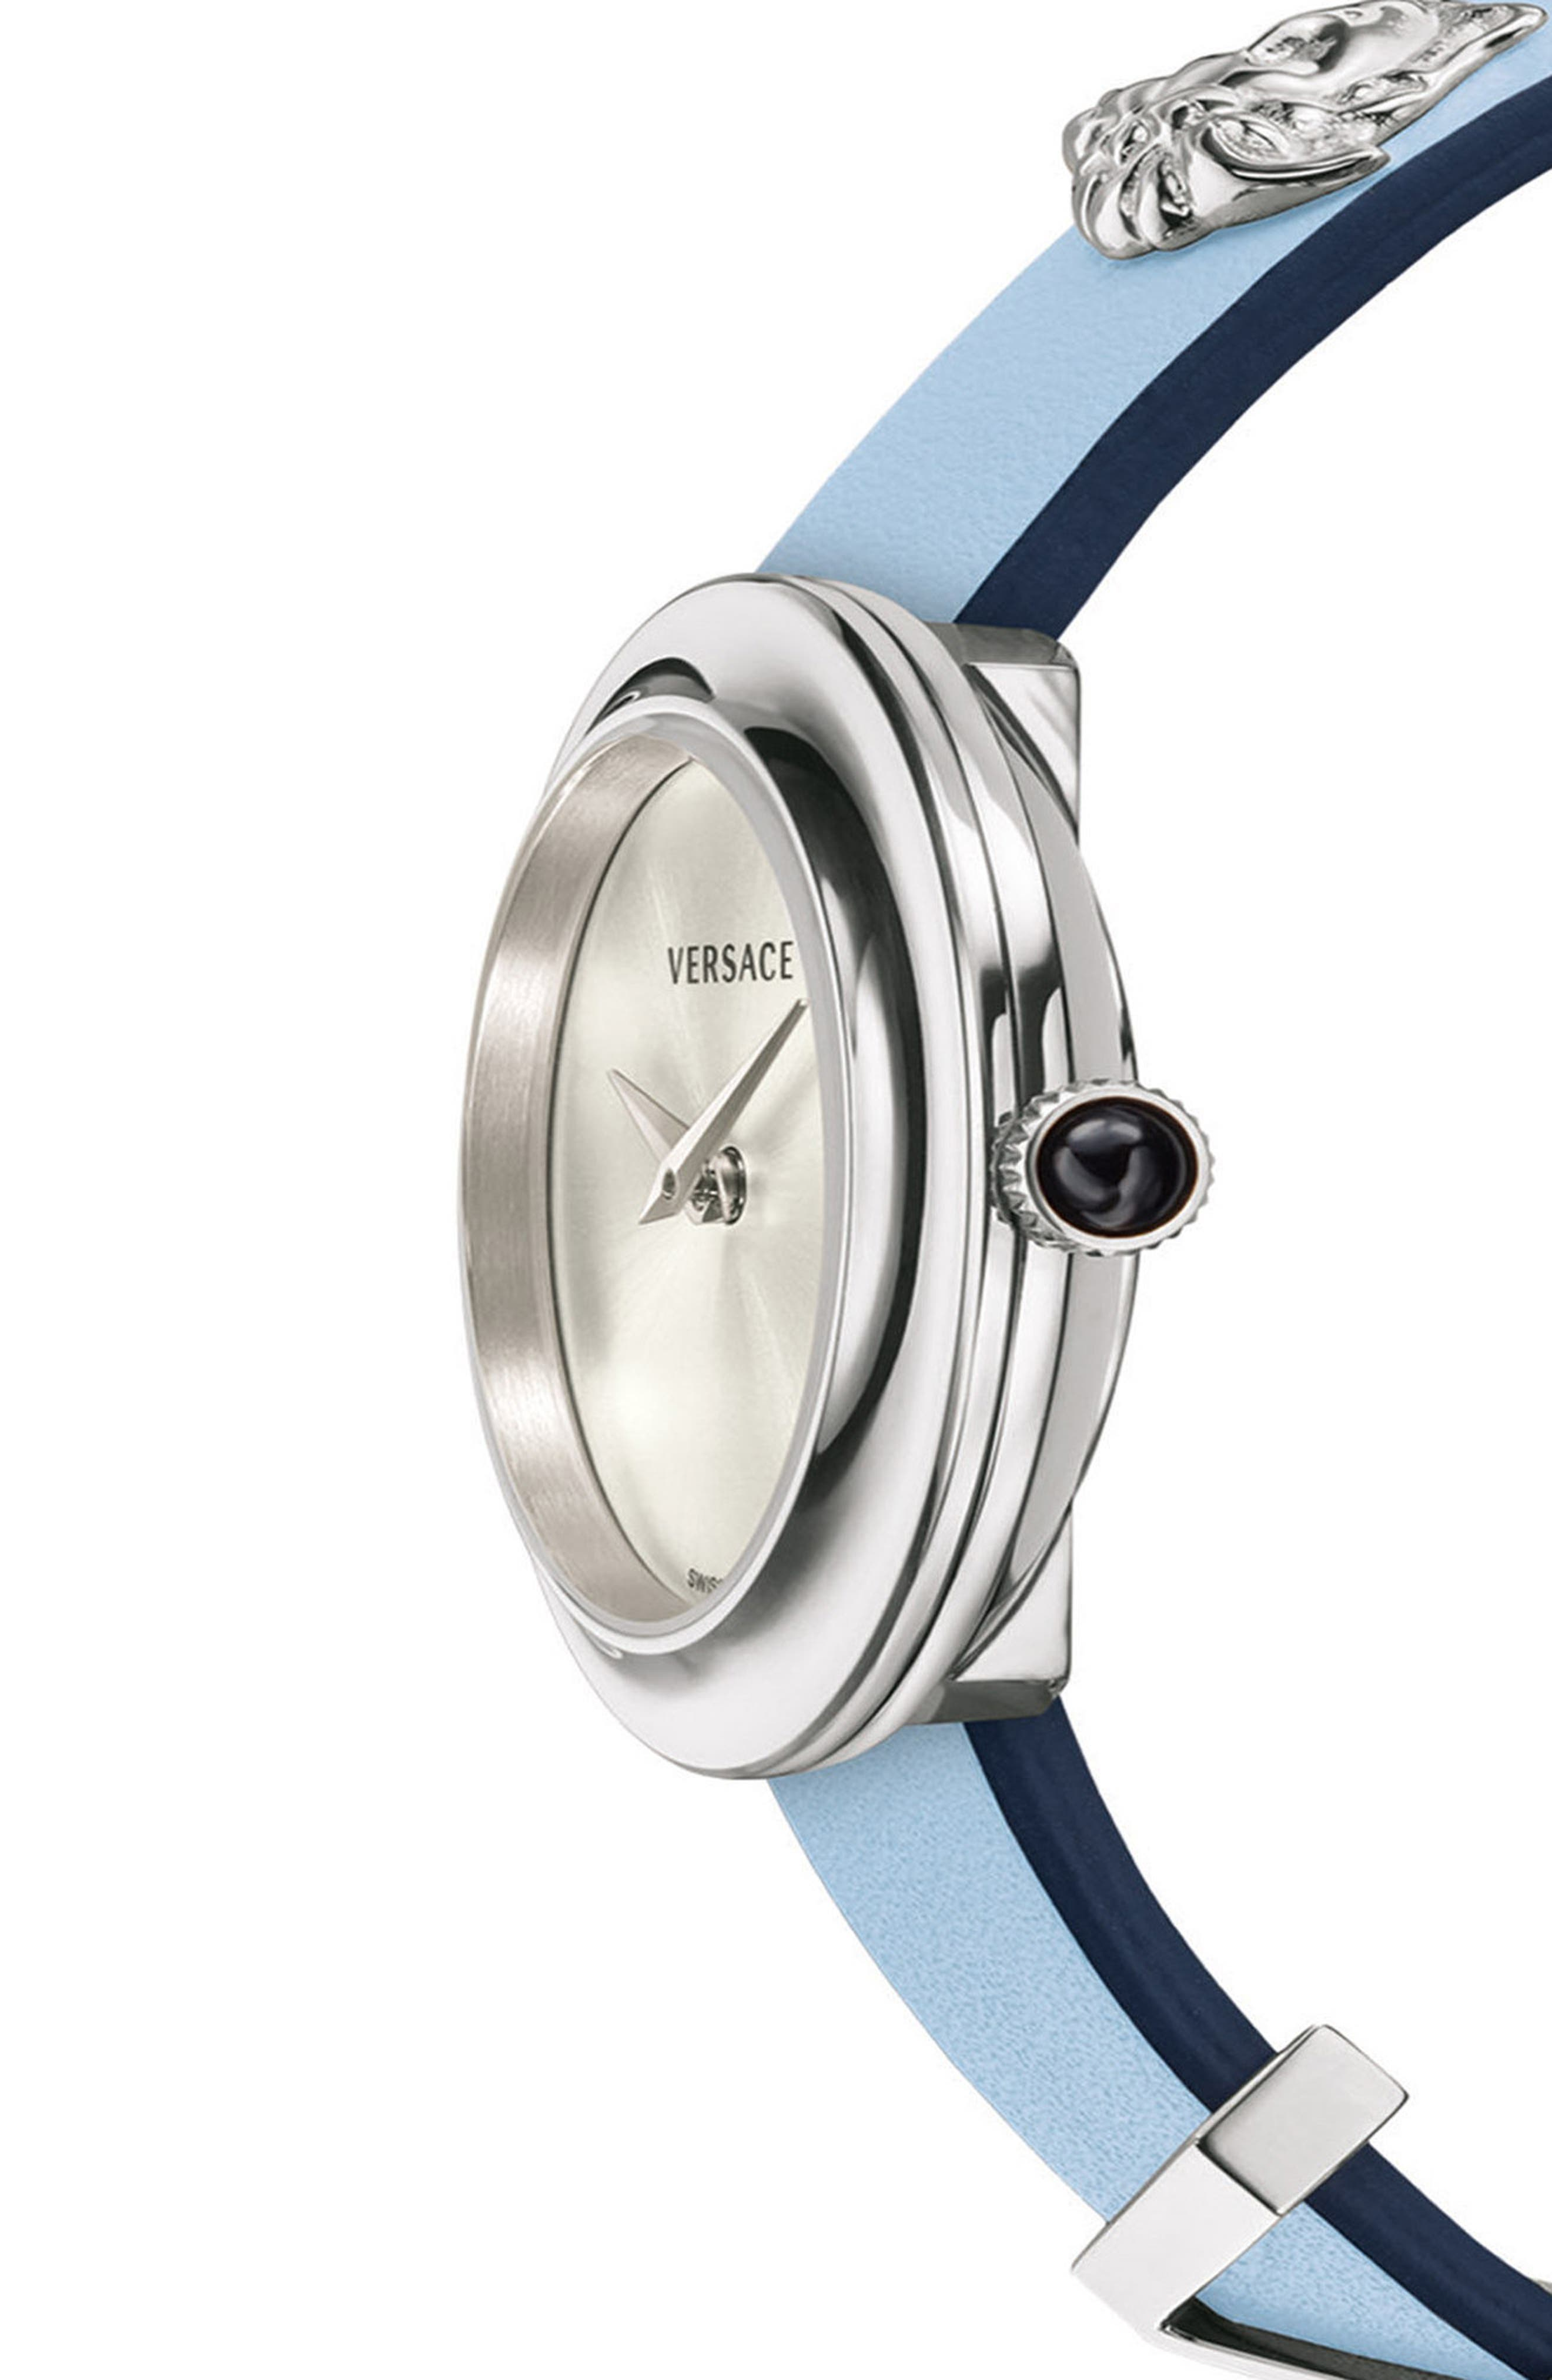 VERSACE, V-Flare Double Wrap Leather Strap Watch, 28mm, Alternate thumbnail 3, color, BLUE/ SILVER/ GOLD